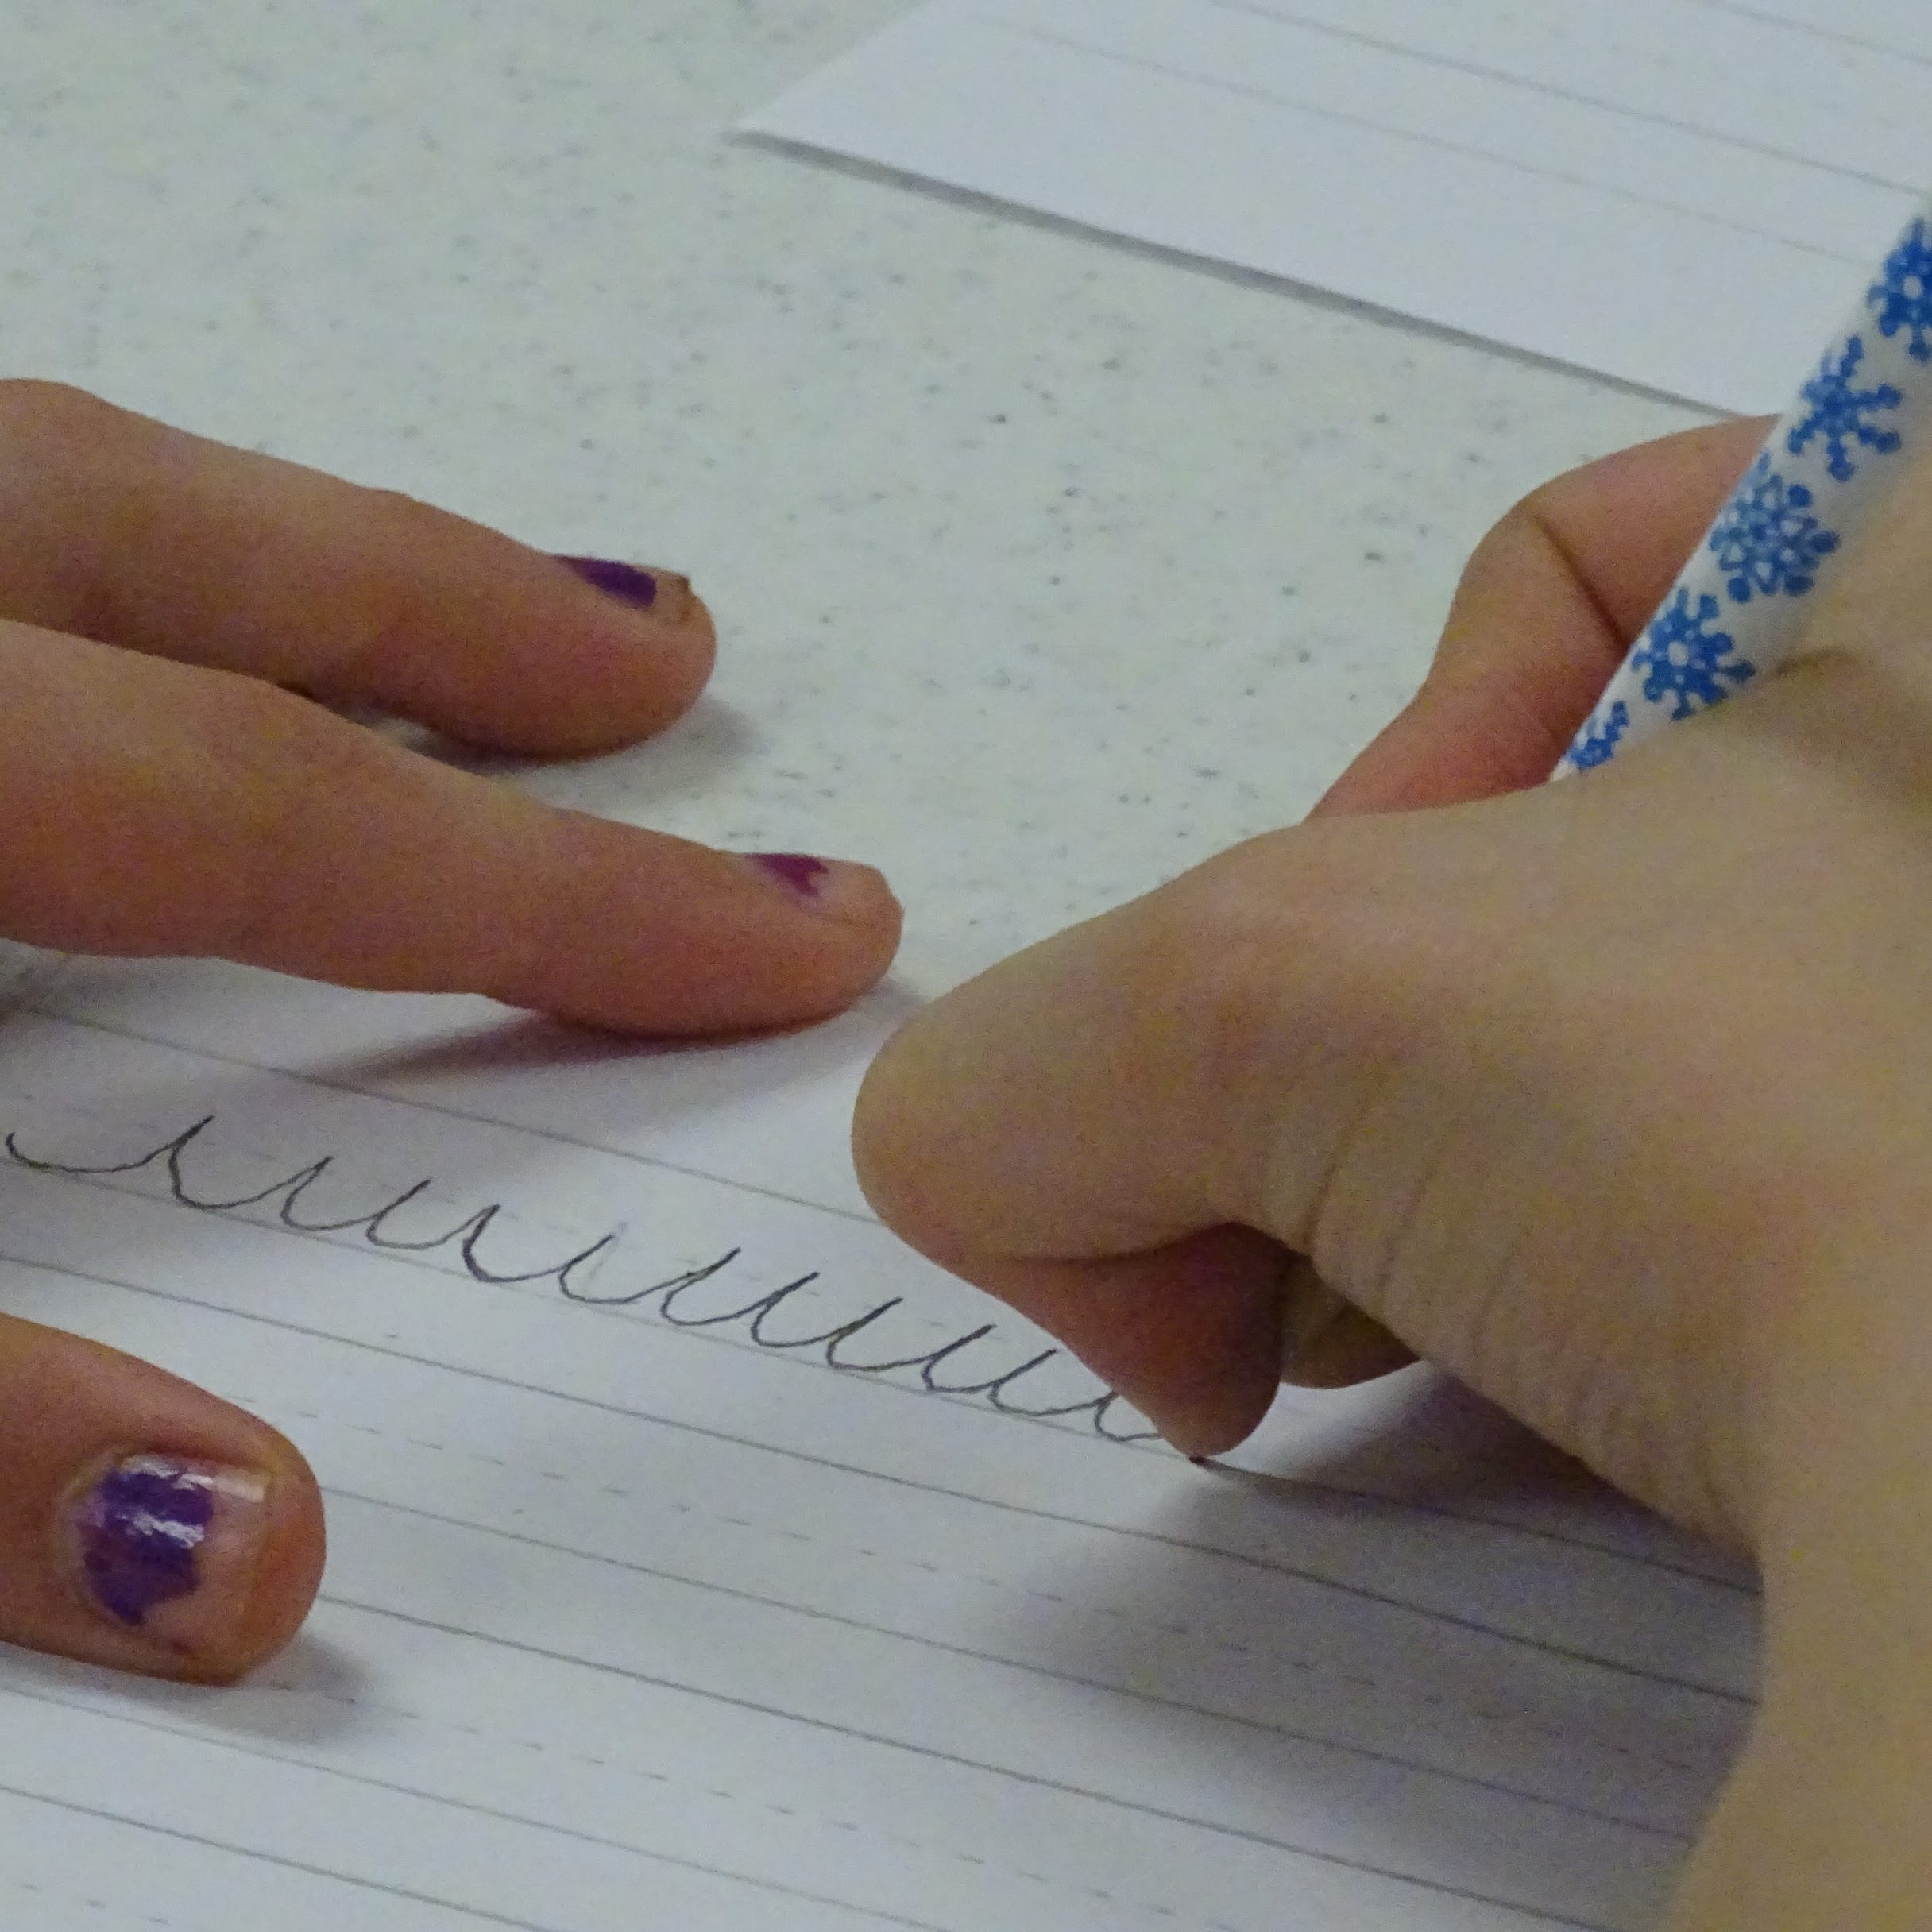 Writing in style: Bucyrus Public Library offers course on cursive